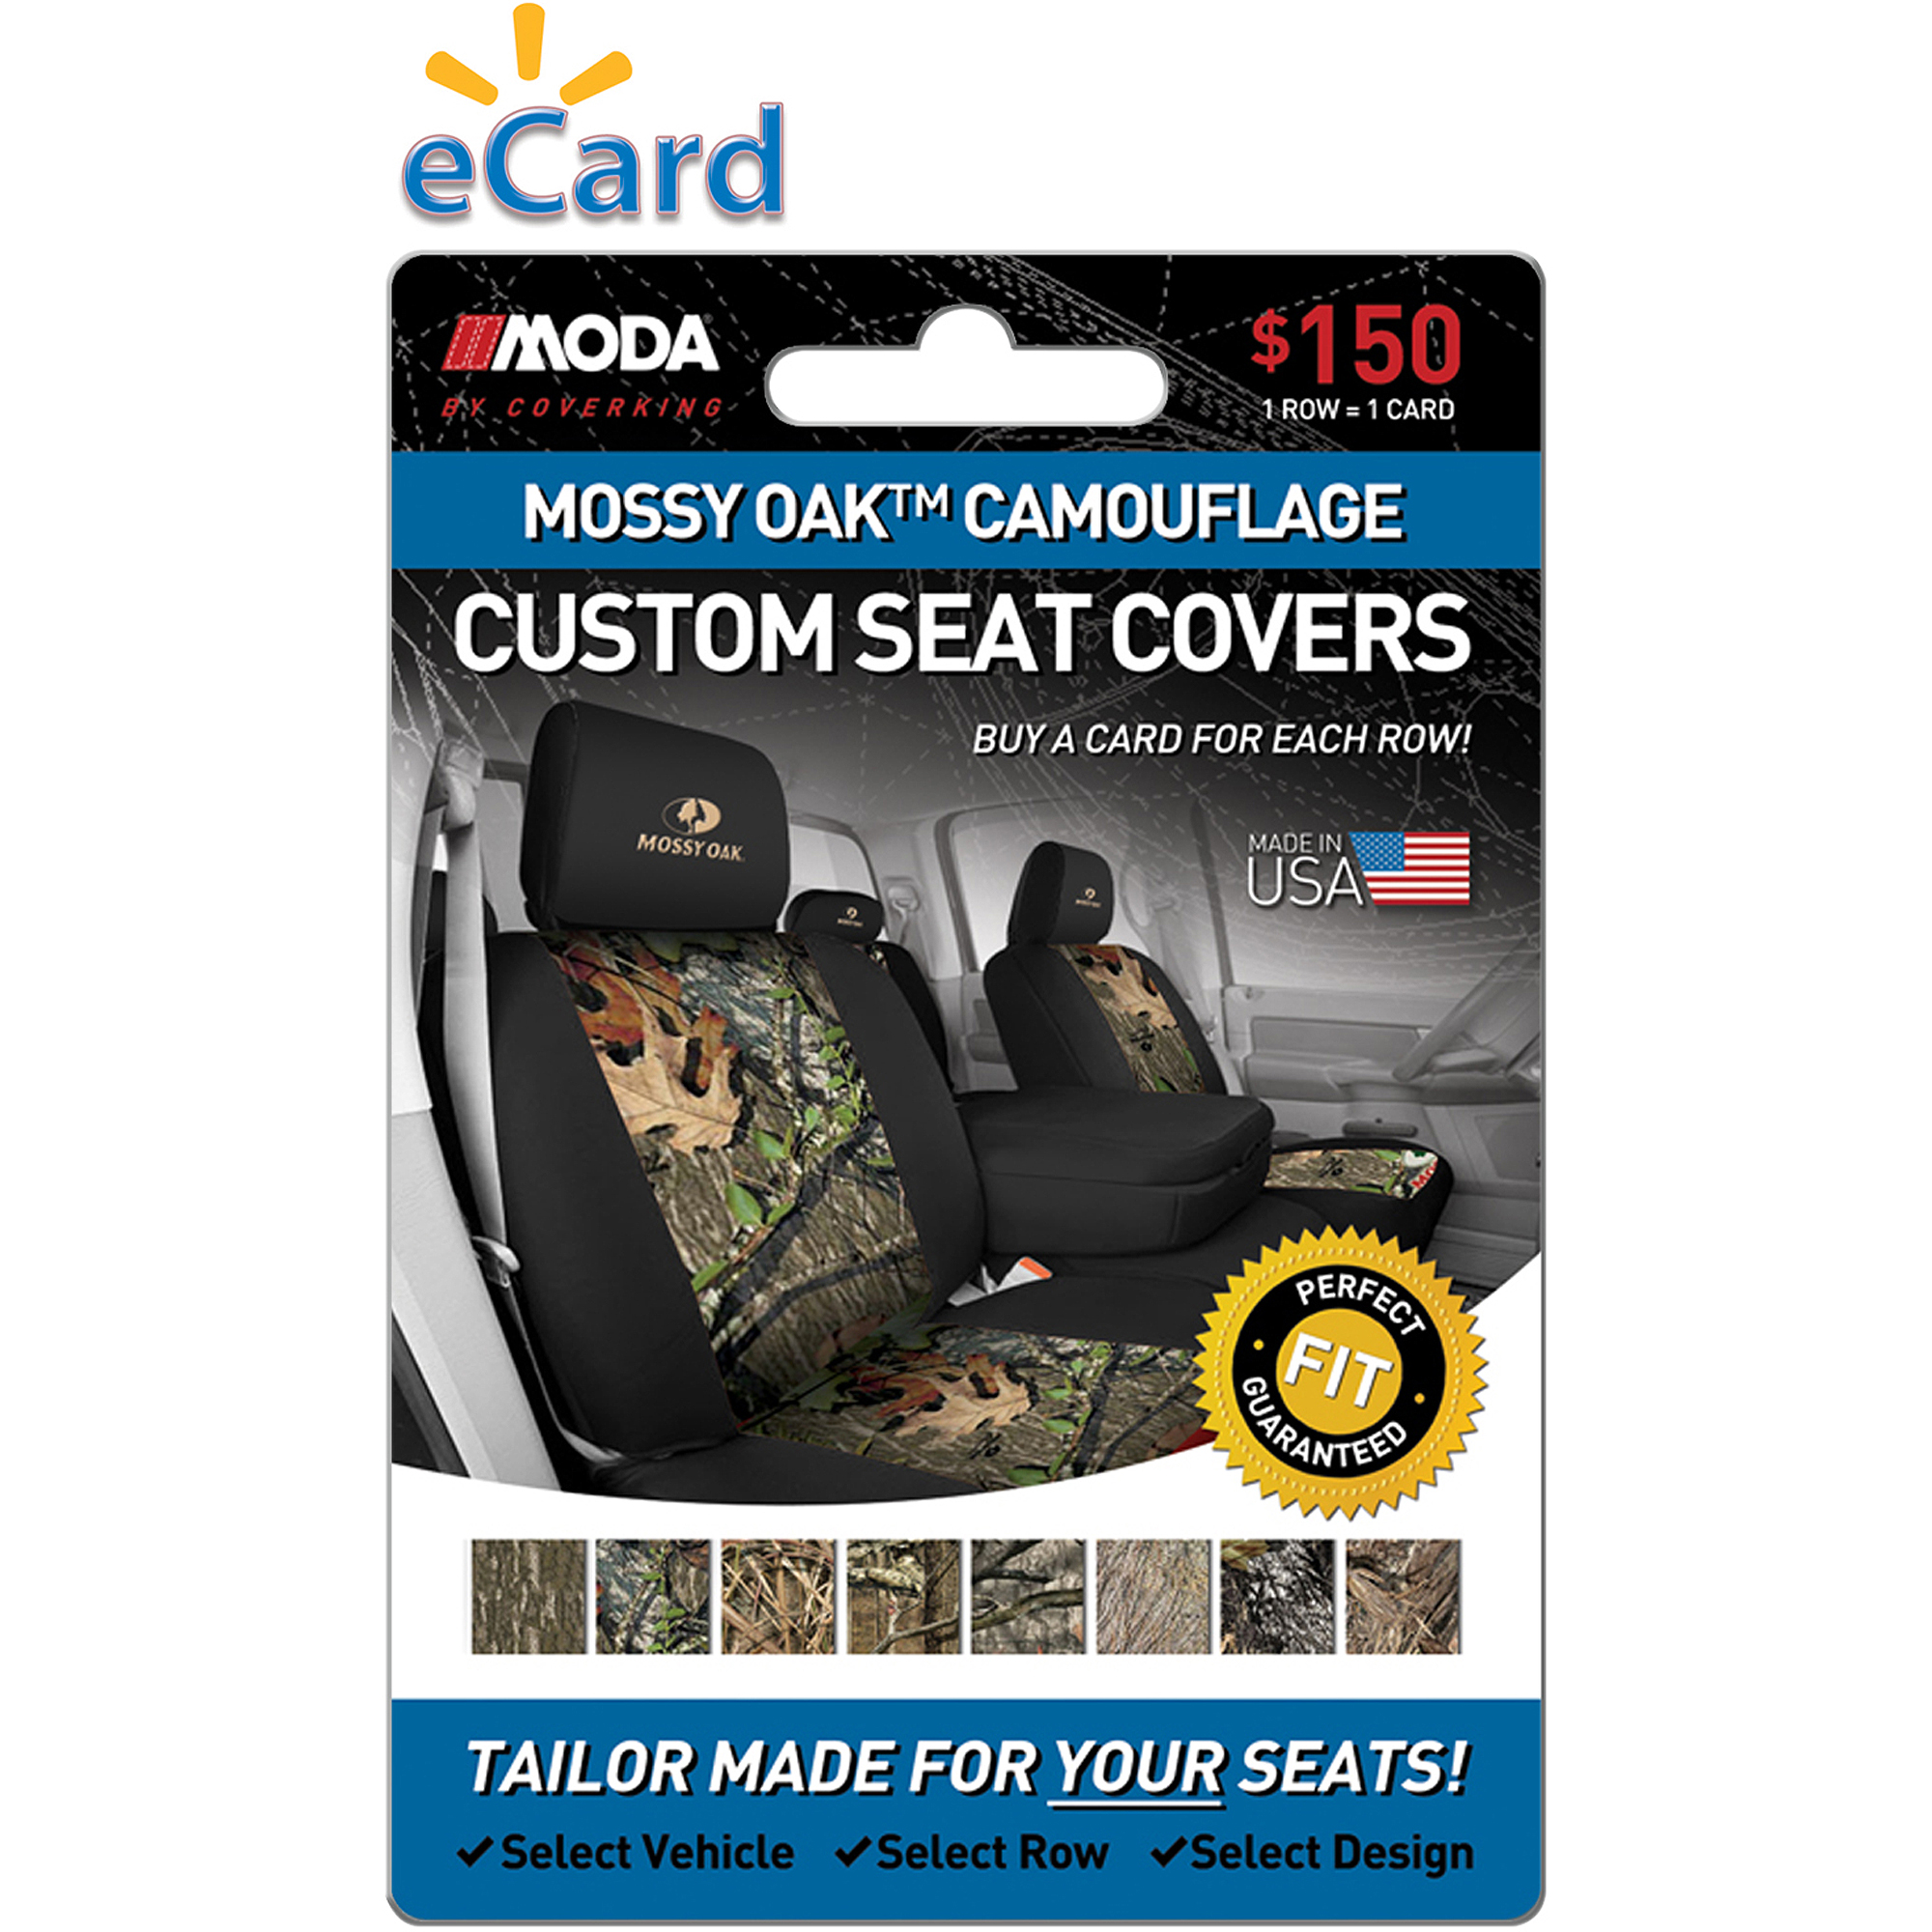 MODA by Coverking Designer Custom Seat Covers Mossy Oak $150 (Email Delivery)